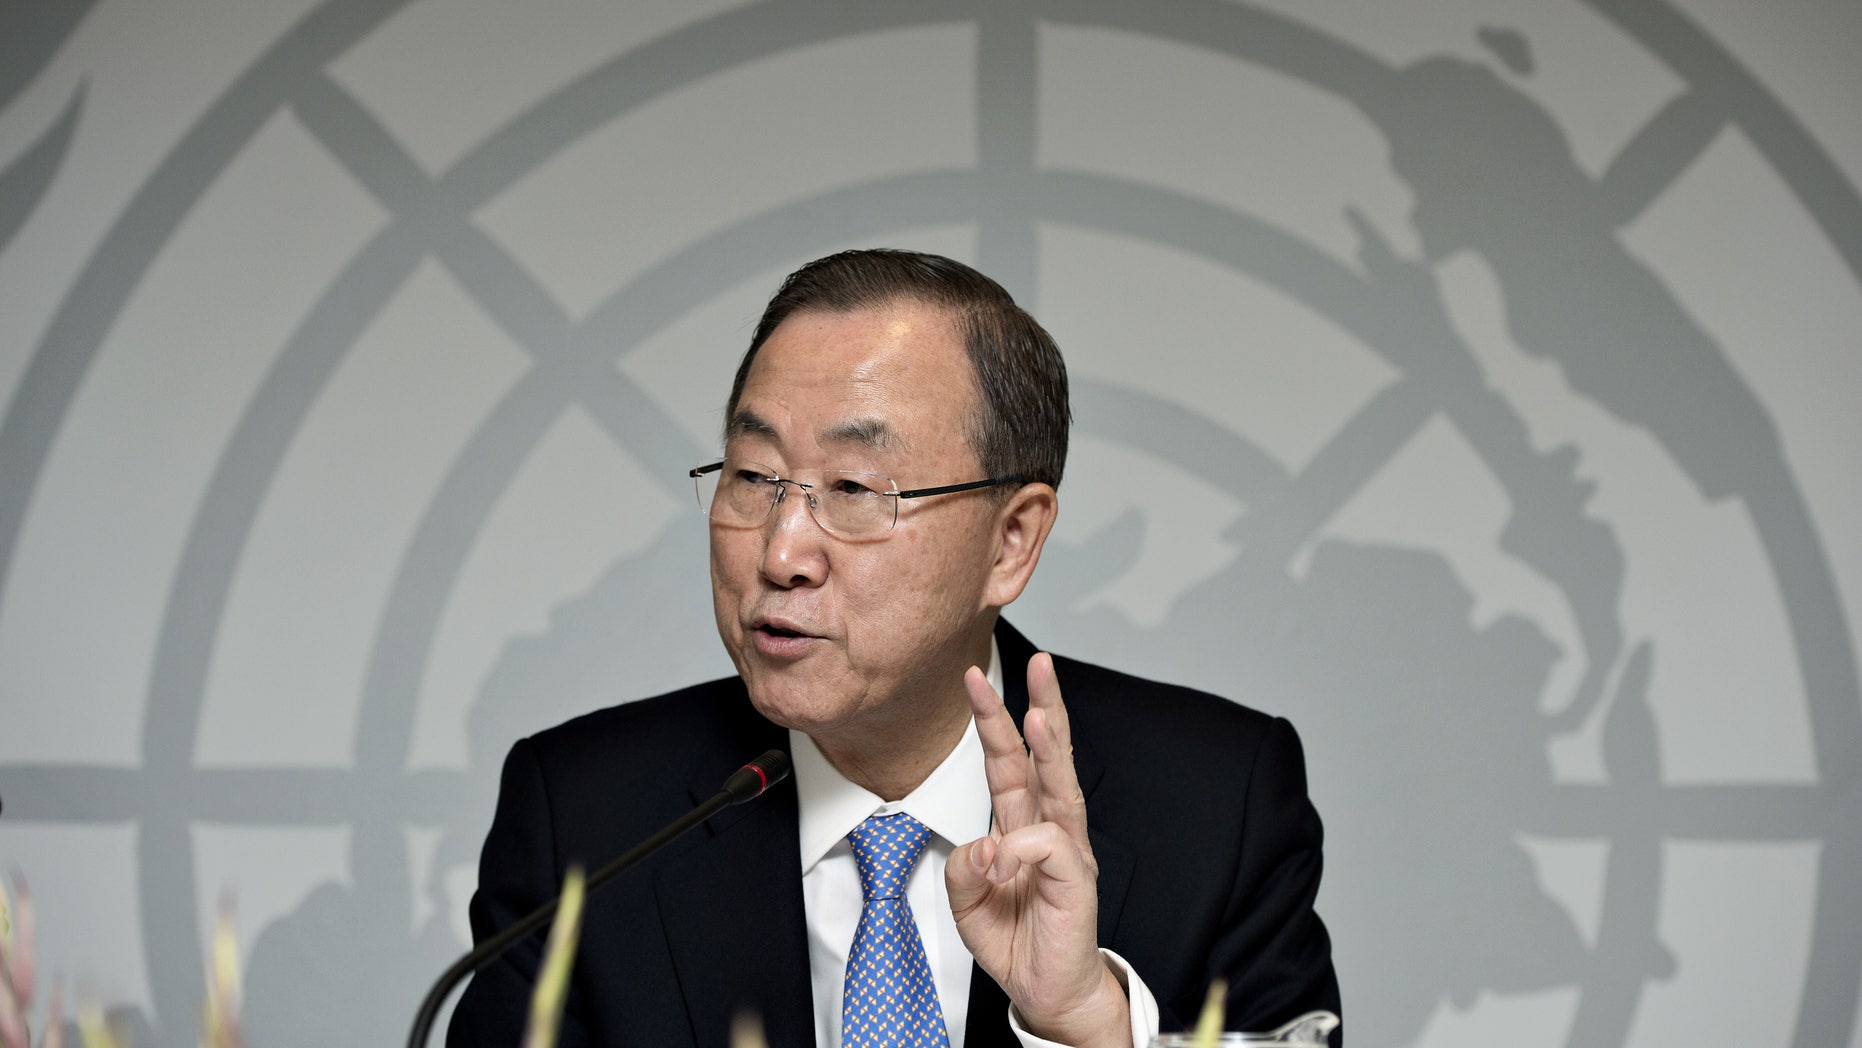 Oct. 23, 2013 - FILE photo of UN General Secretary Ban Ki-moon during a press conference in Copenhagen, Denmark.